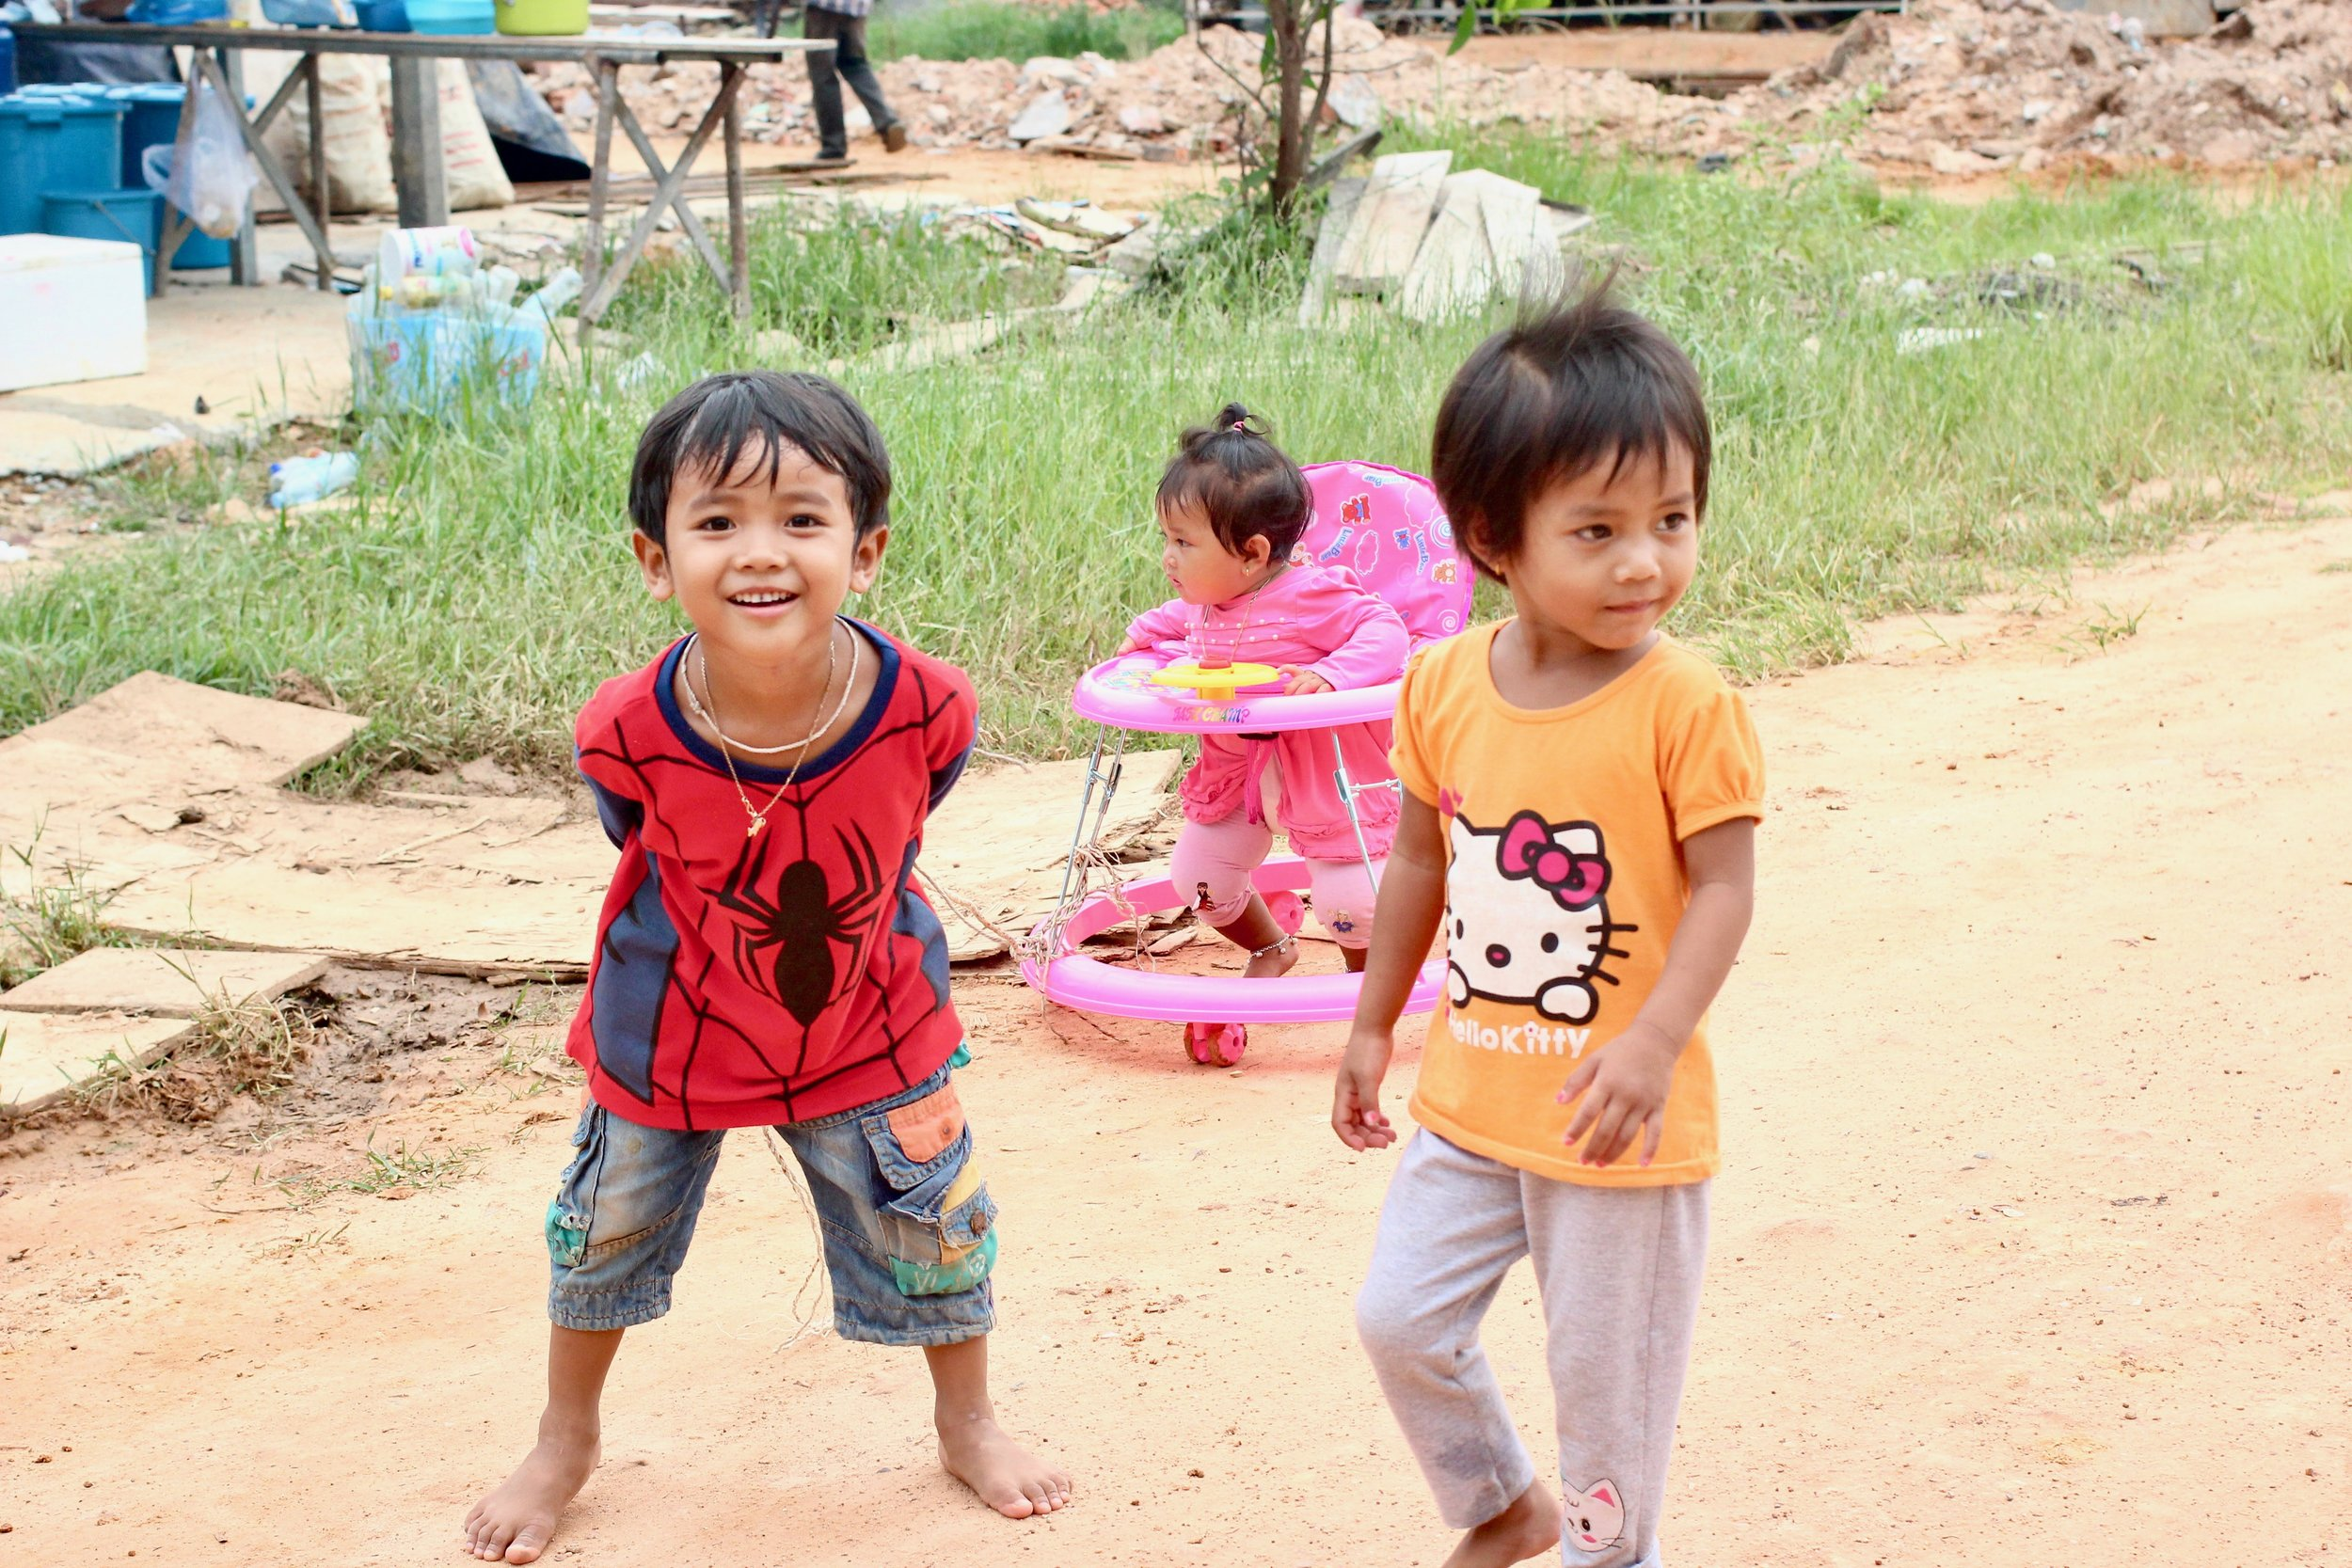 Smiling Cambodian faces as I wander the village. Children = presence always